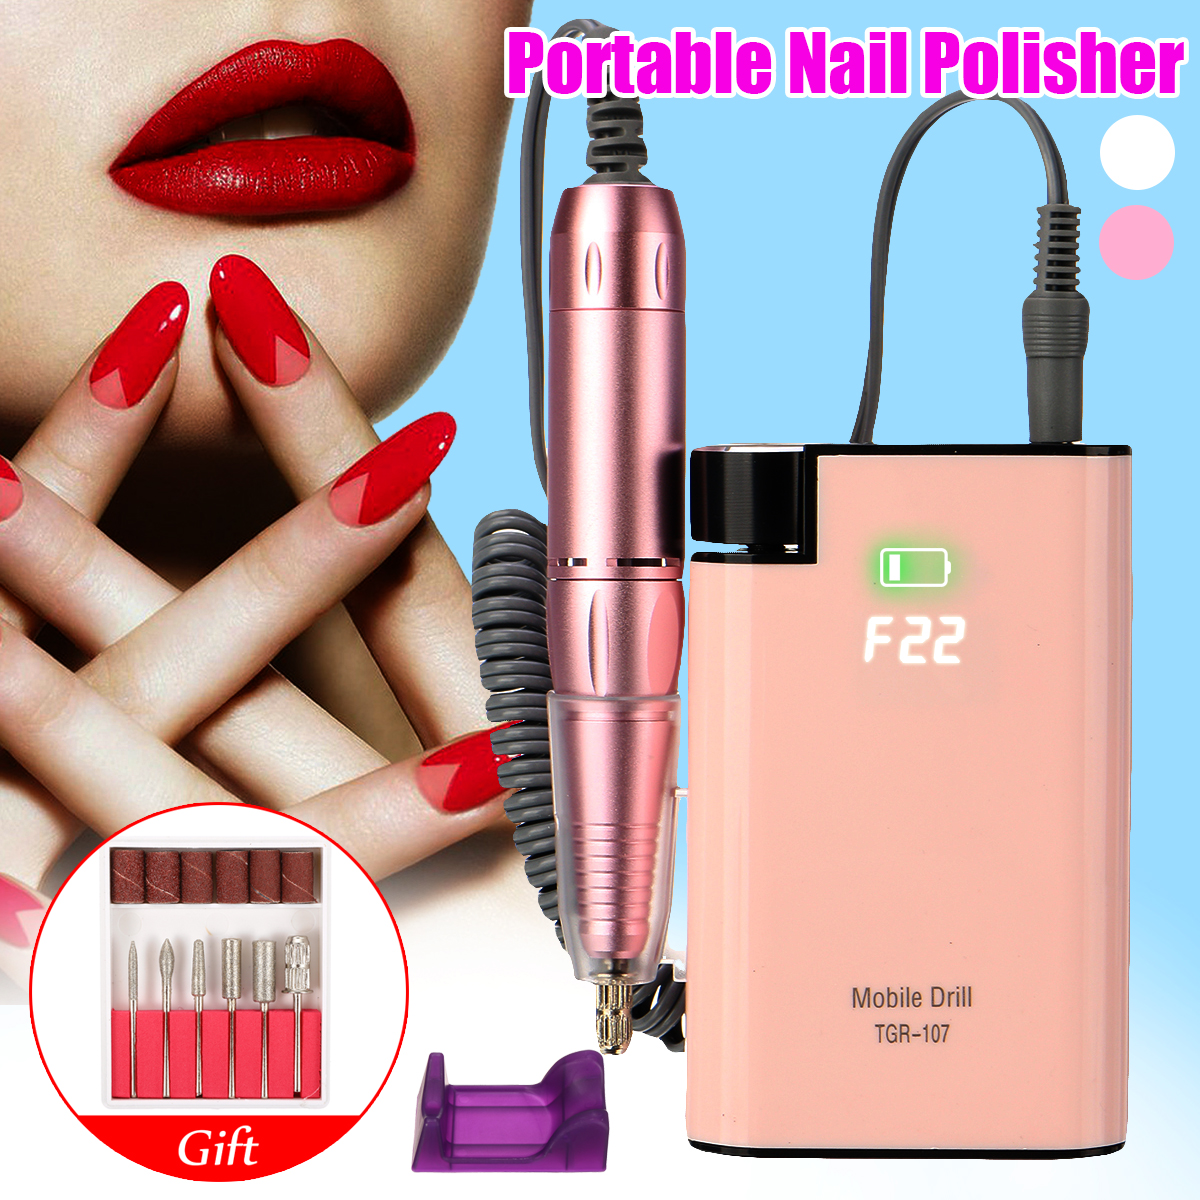 Charging 110 ~ 220V Wide Voltage Portable Nail Polisher